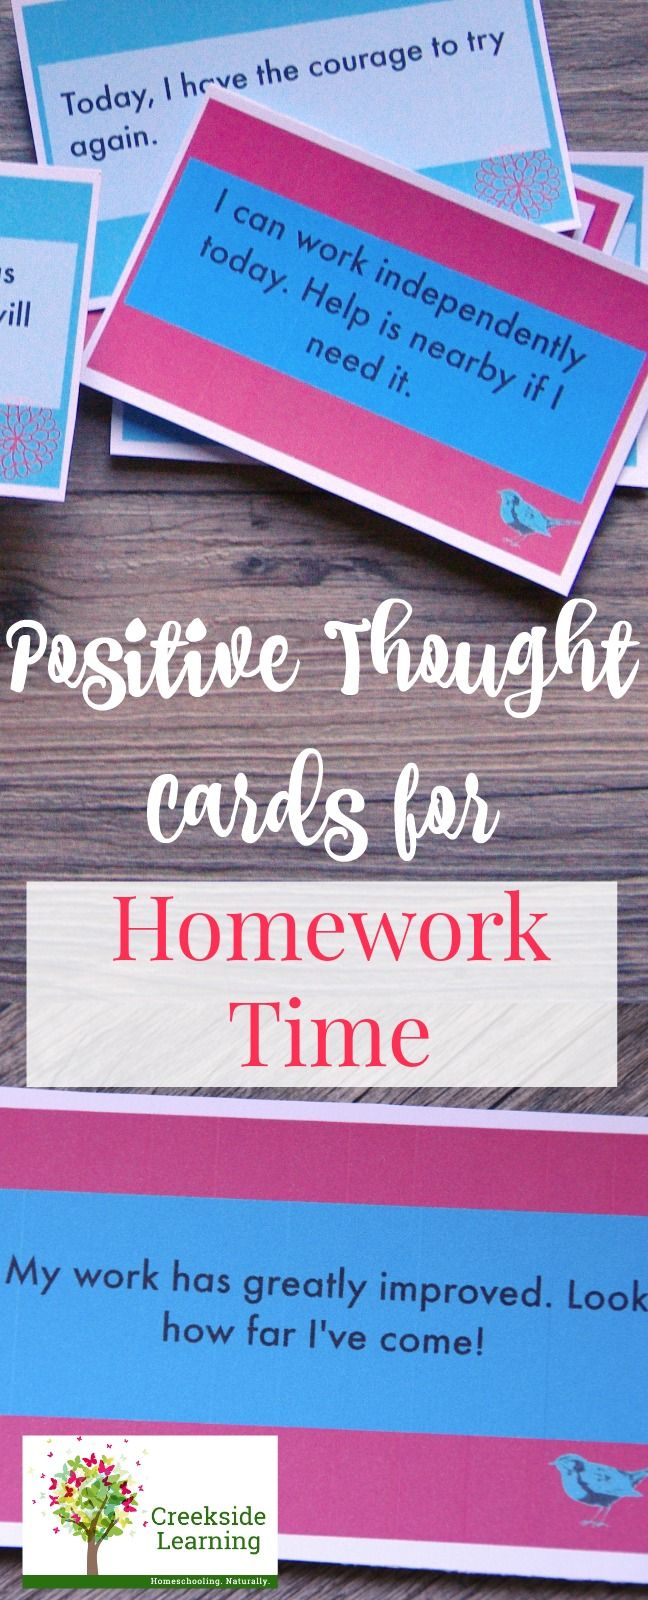 I need help focusing on homework Pinterest